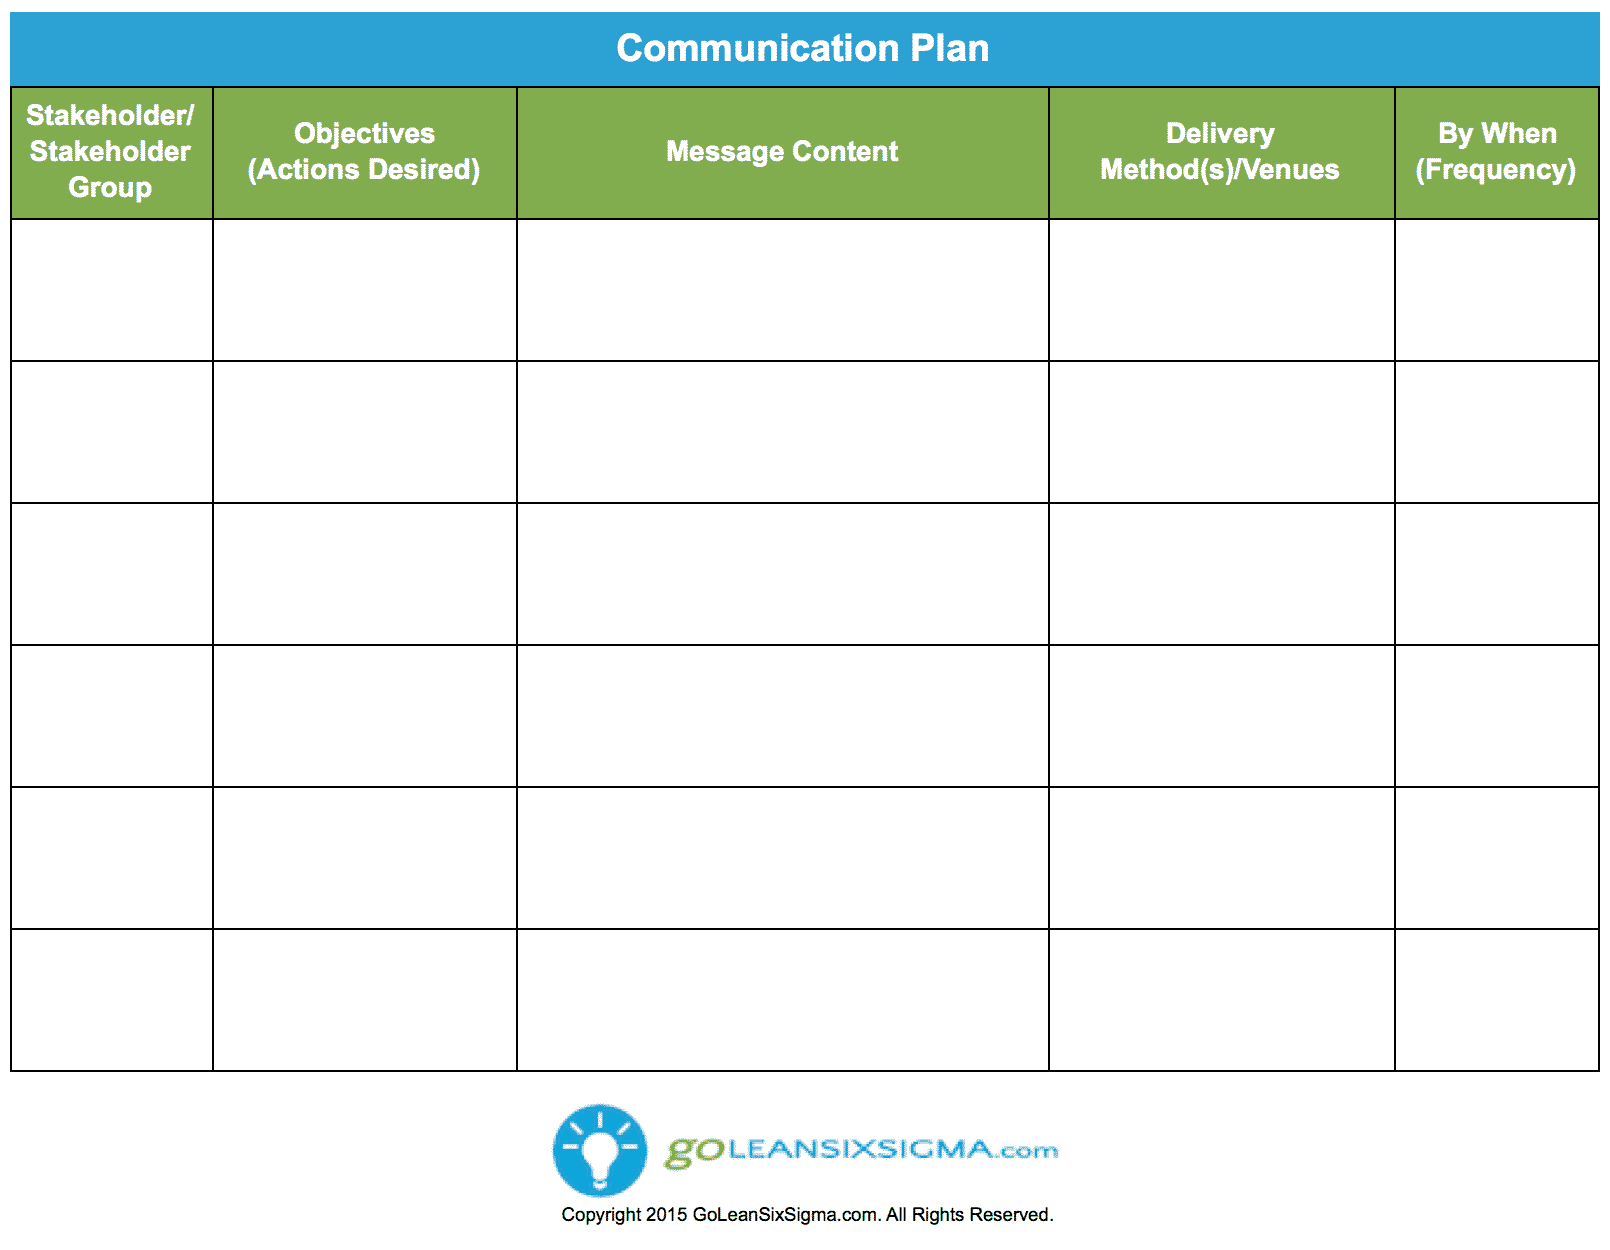 Communication Plan – GoLeanSixSigma.com